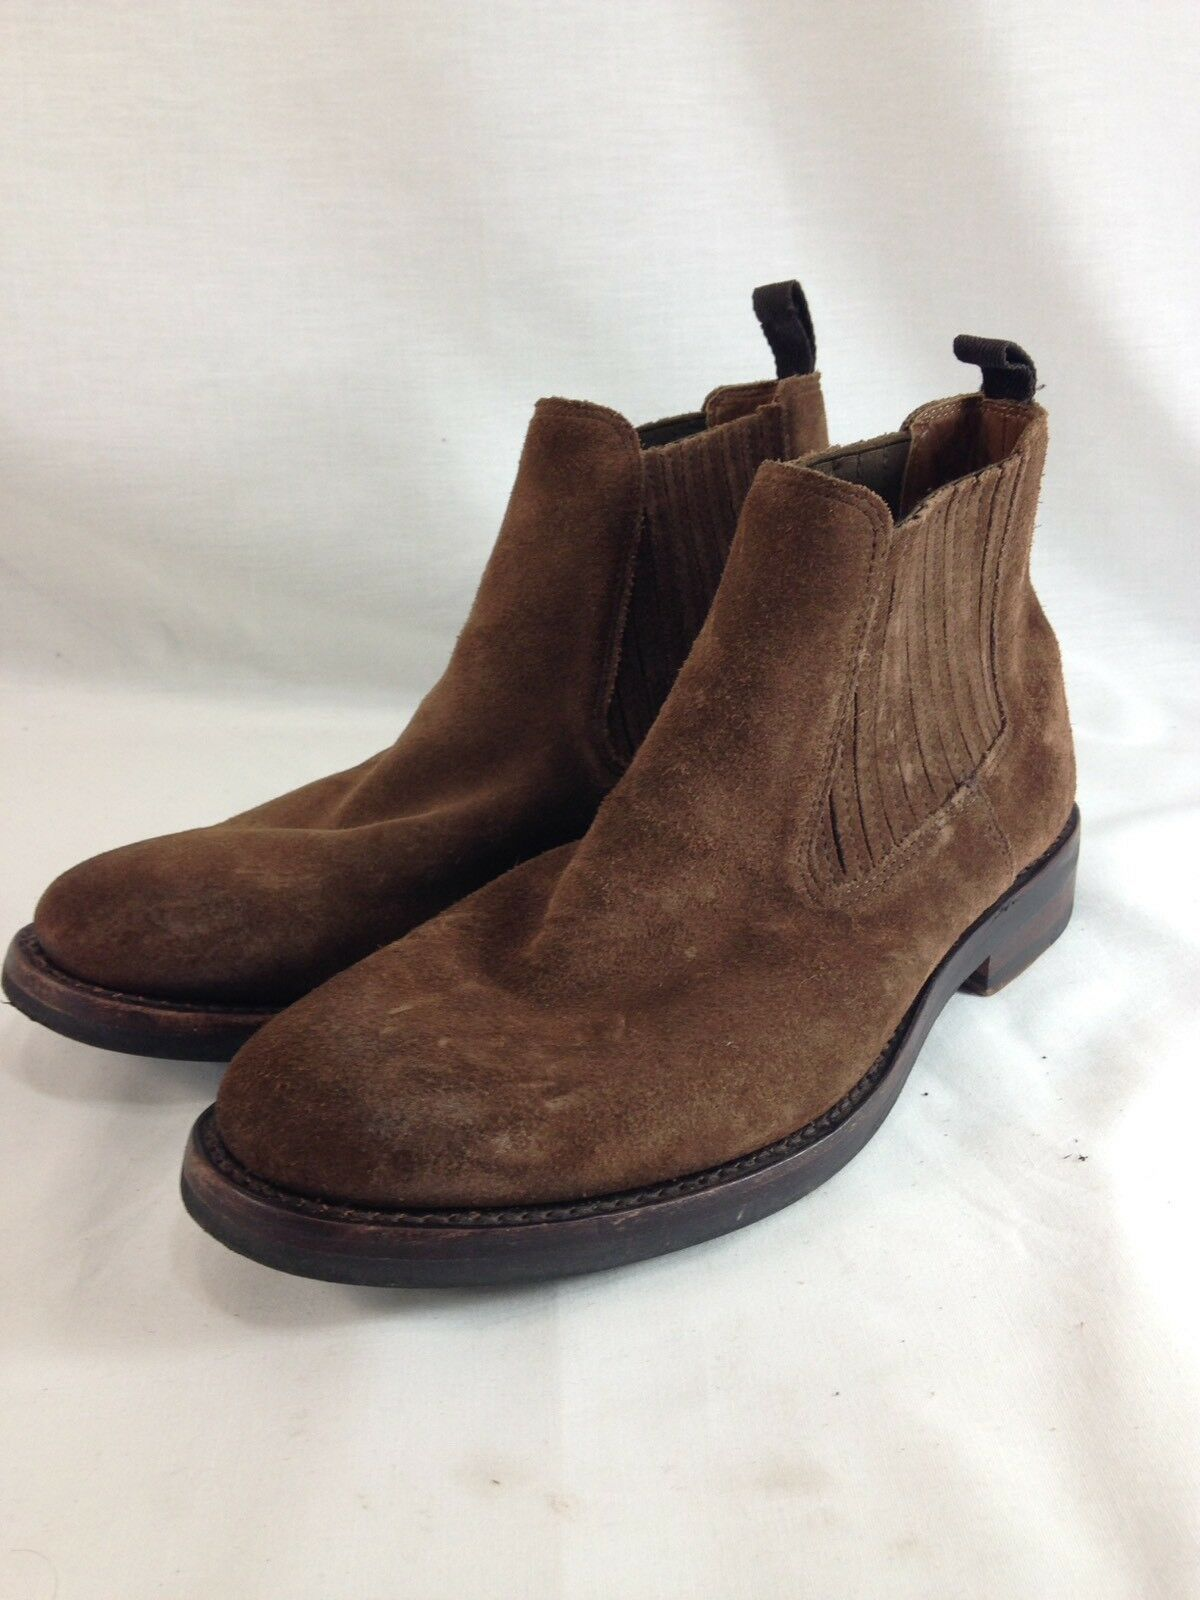 LL Bean Signature Chelsea shoes Ankle Boots Chukka Mens 10.5 Brown Leather Suede